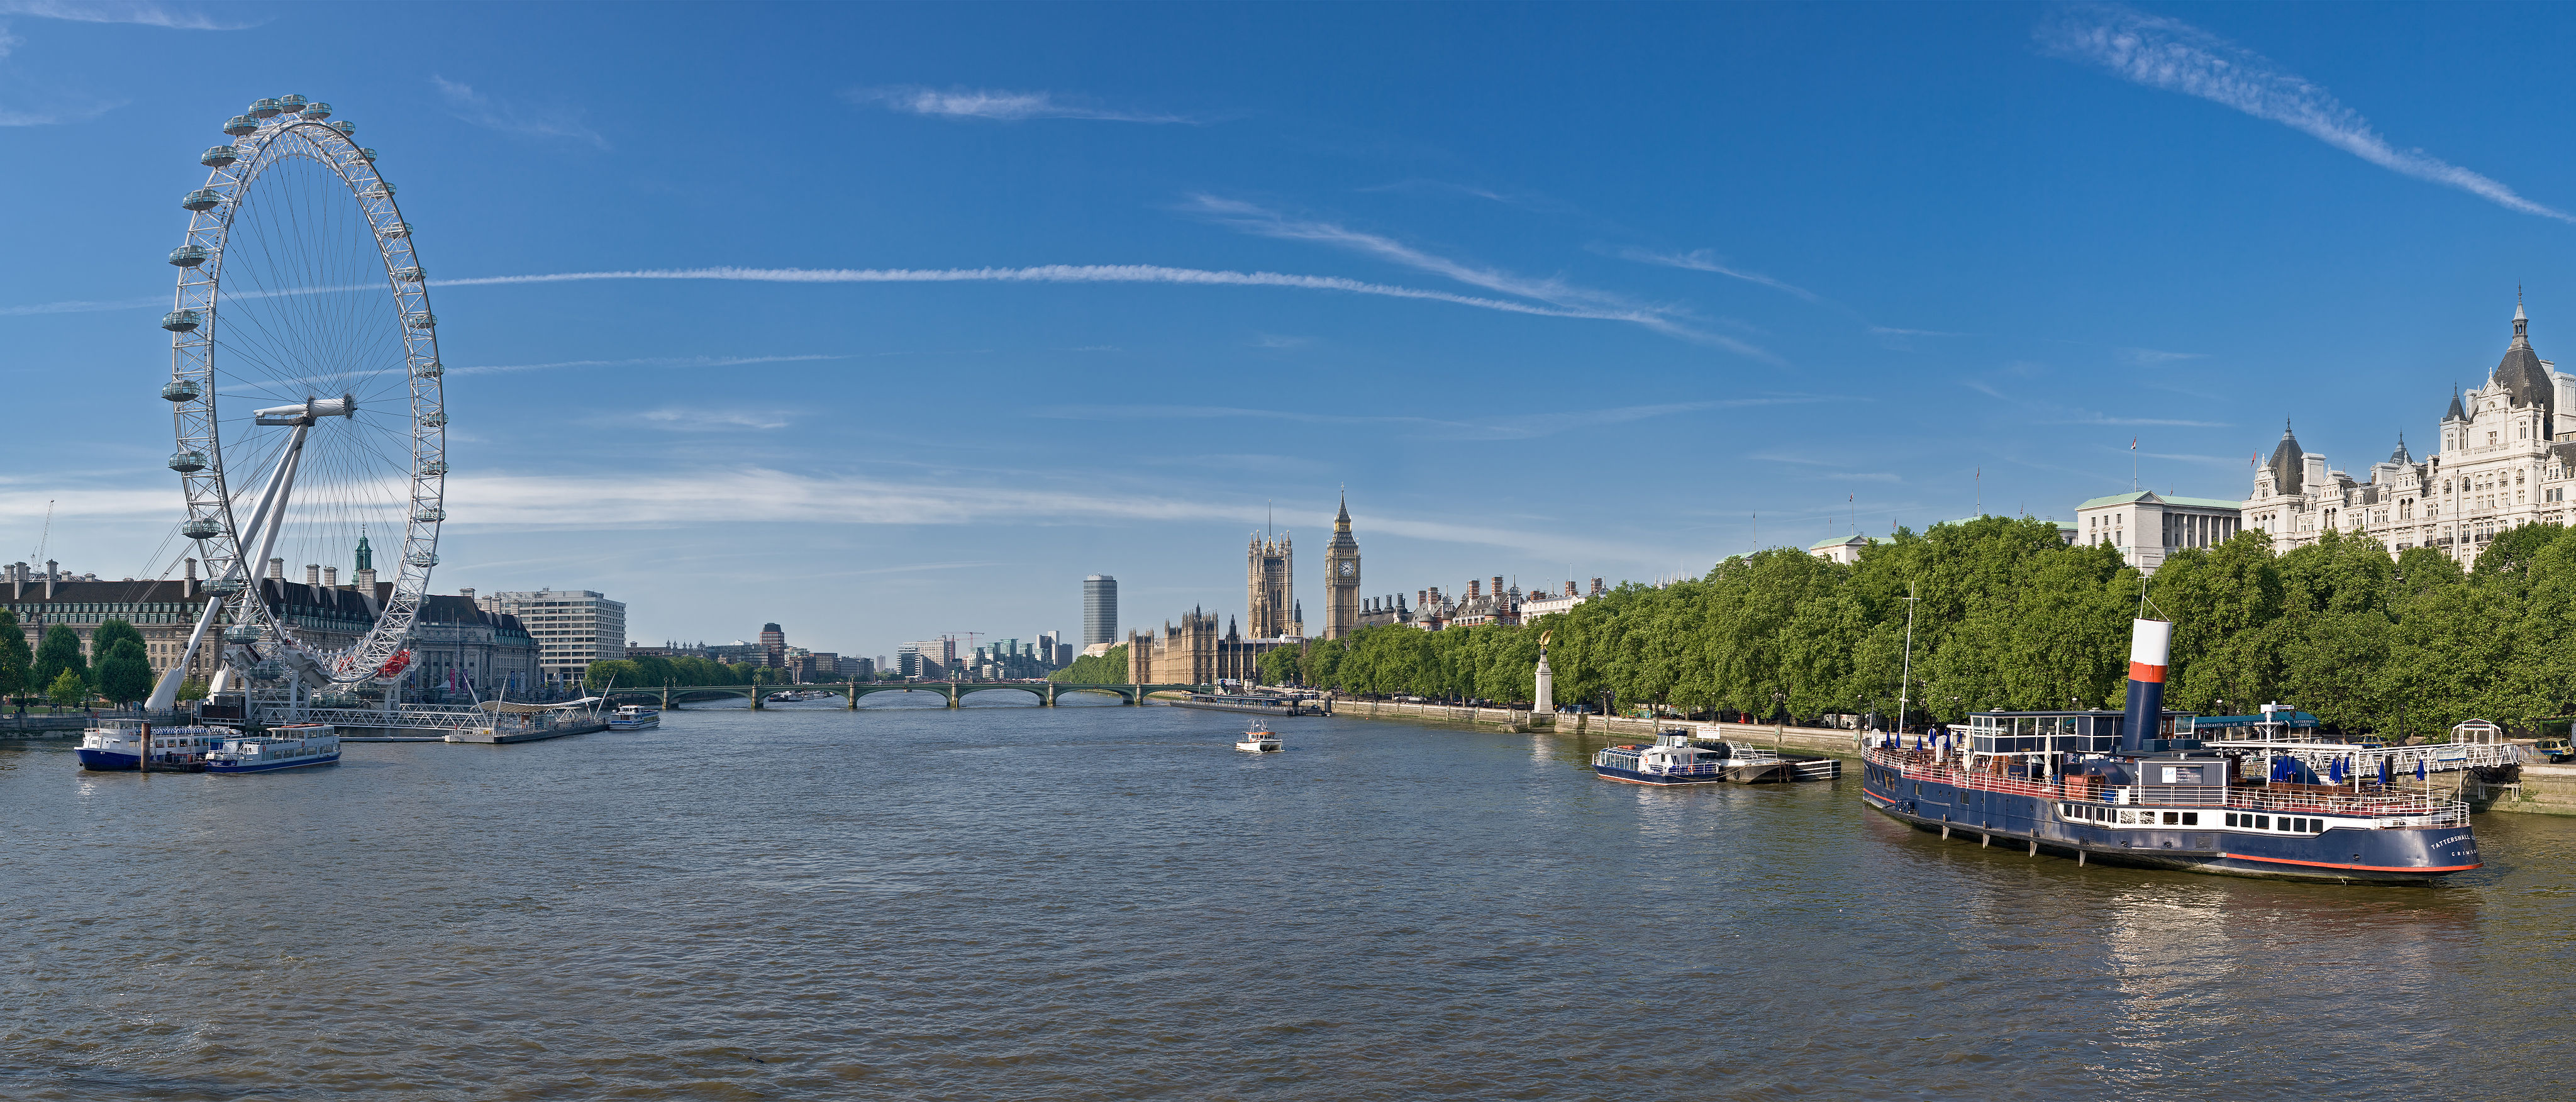 Thames_Panorama,_London_-_June_2009.jpg